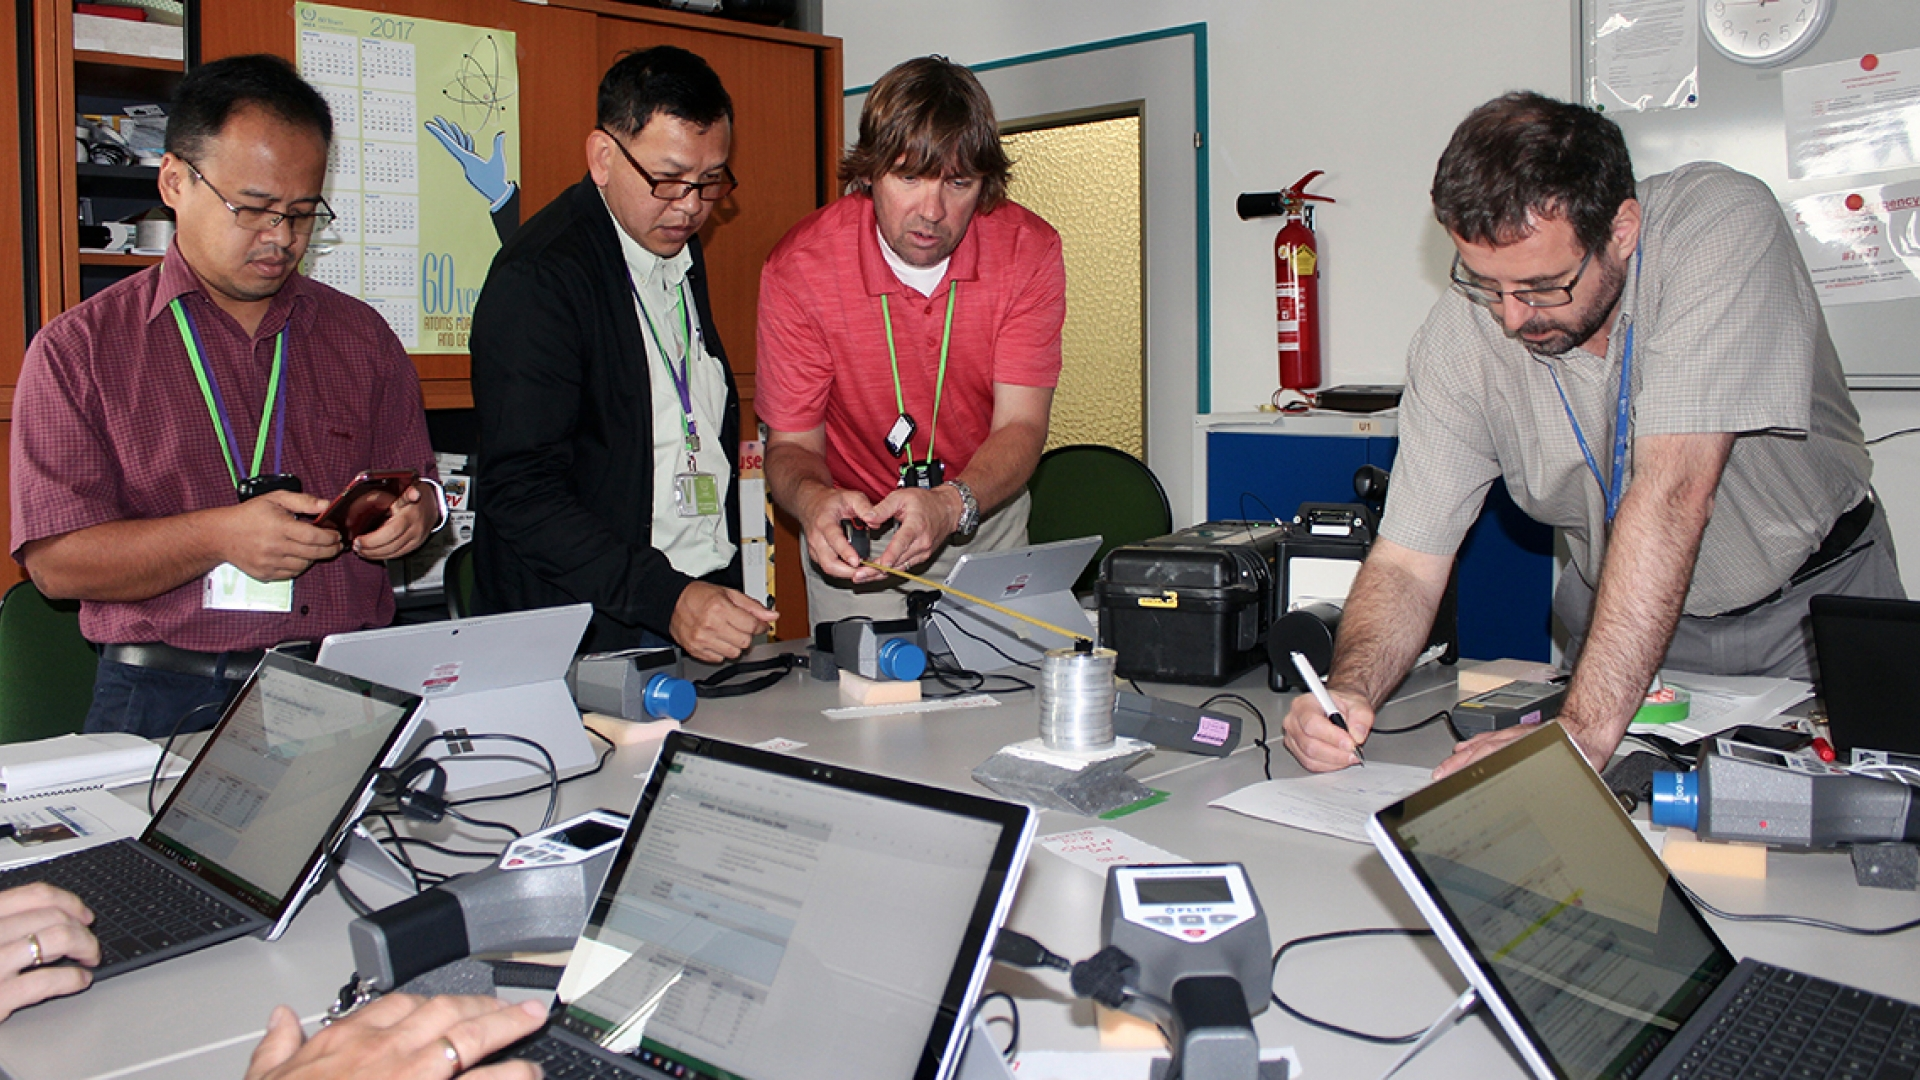 Workshop Aids Nuclear Security Experts In Testing And